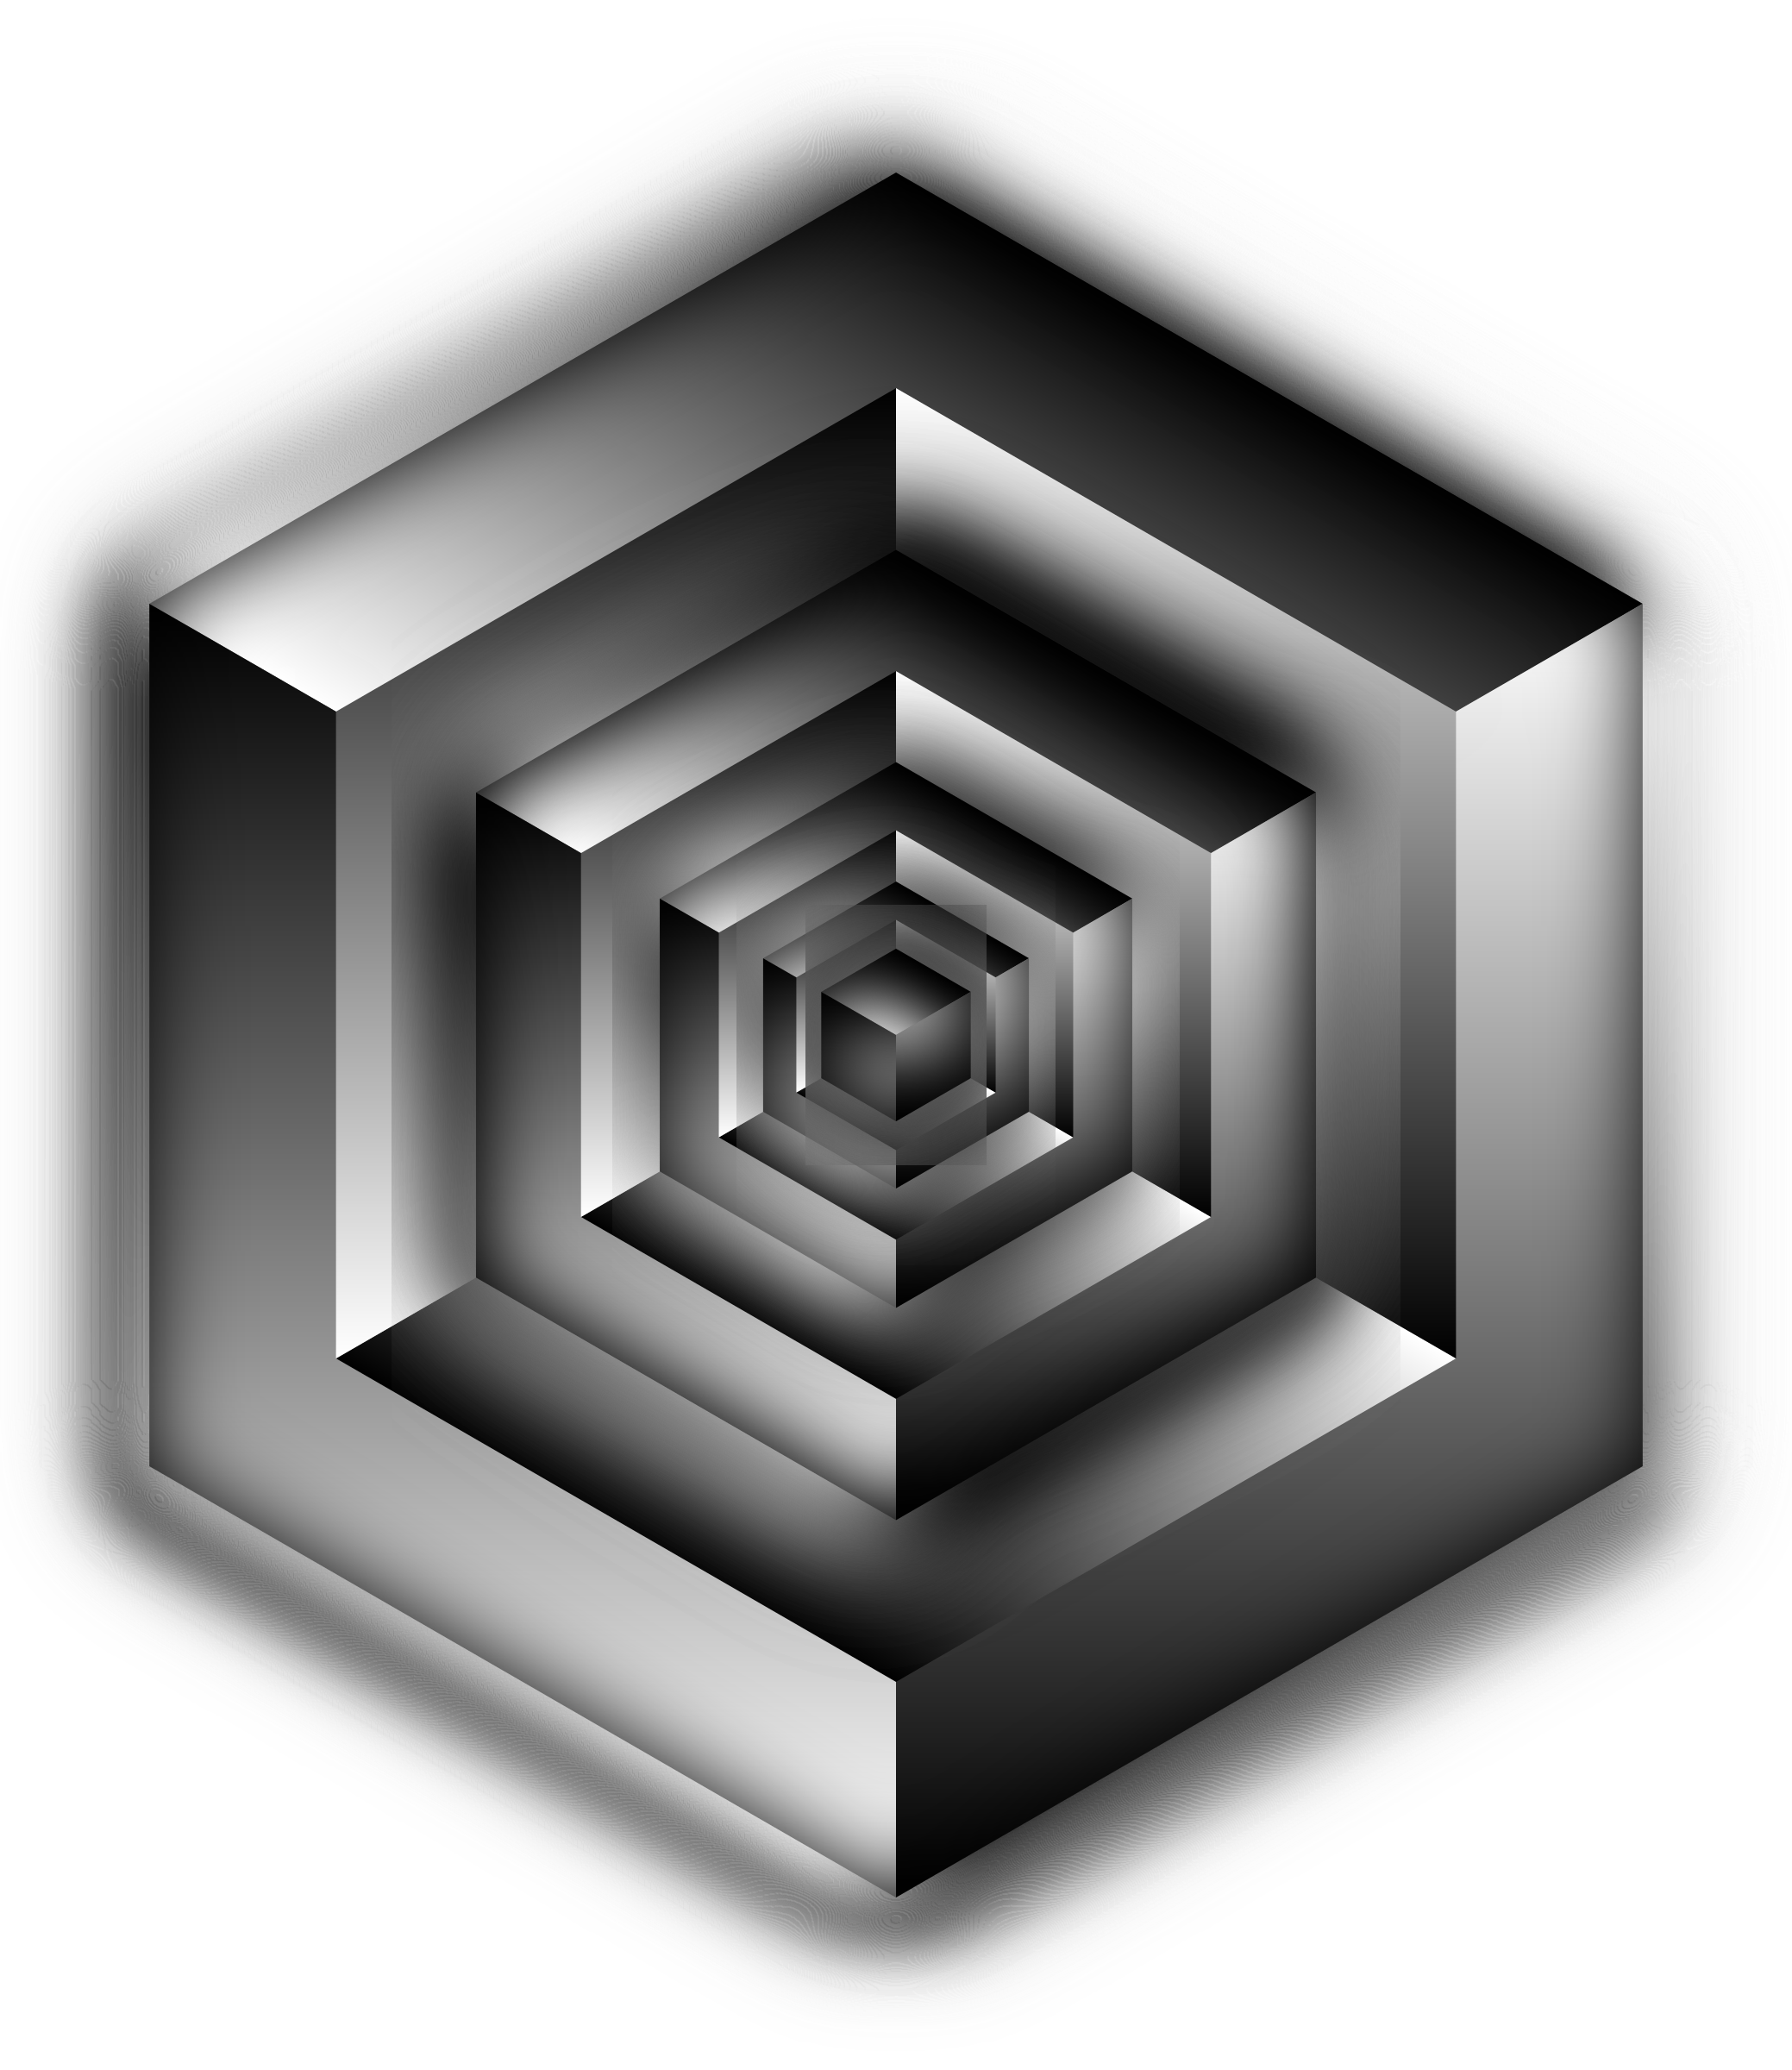 Isometric Cube Illusion Shaded by GDJ